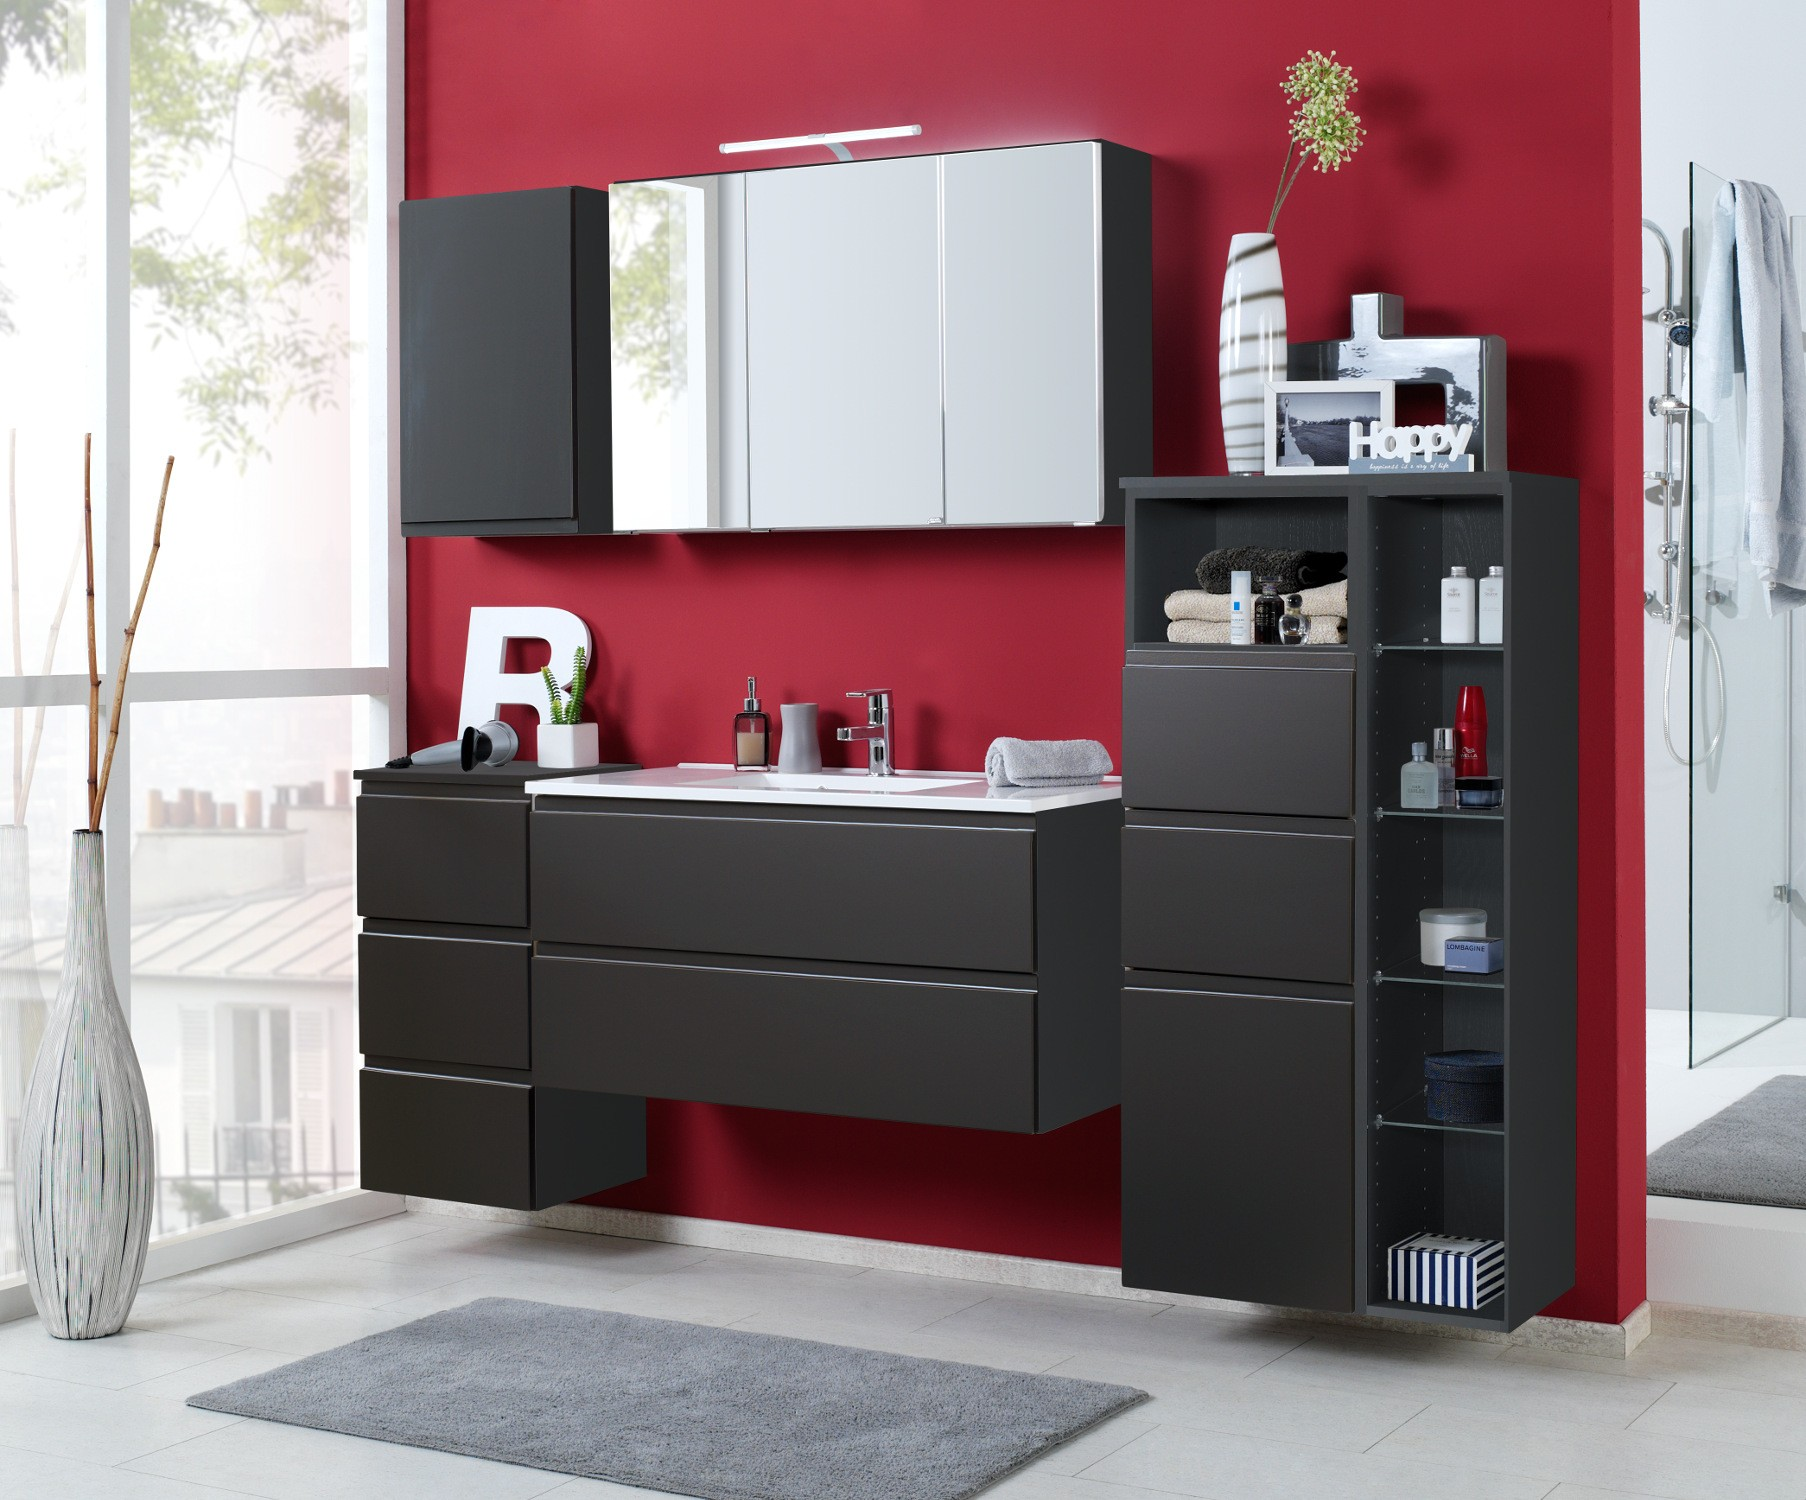 badm bel set cardiff mit waschtisch 7 teilig 205 cm. Black Bedroom Furniture Sets. Home Design Ideas